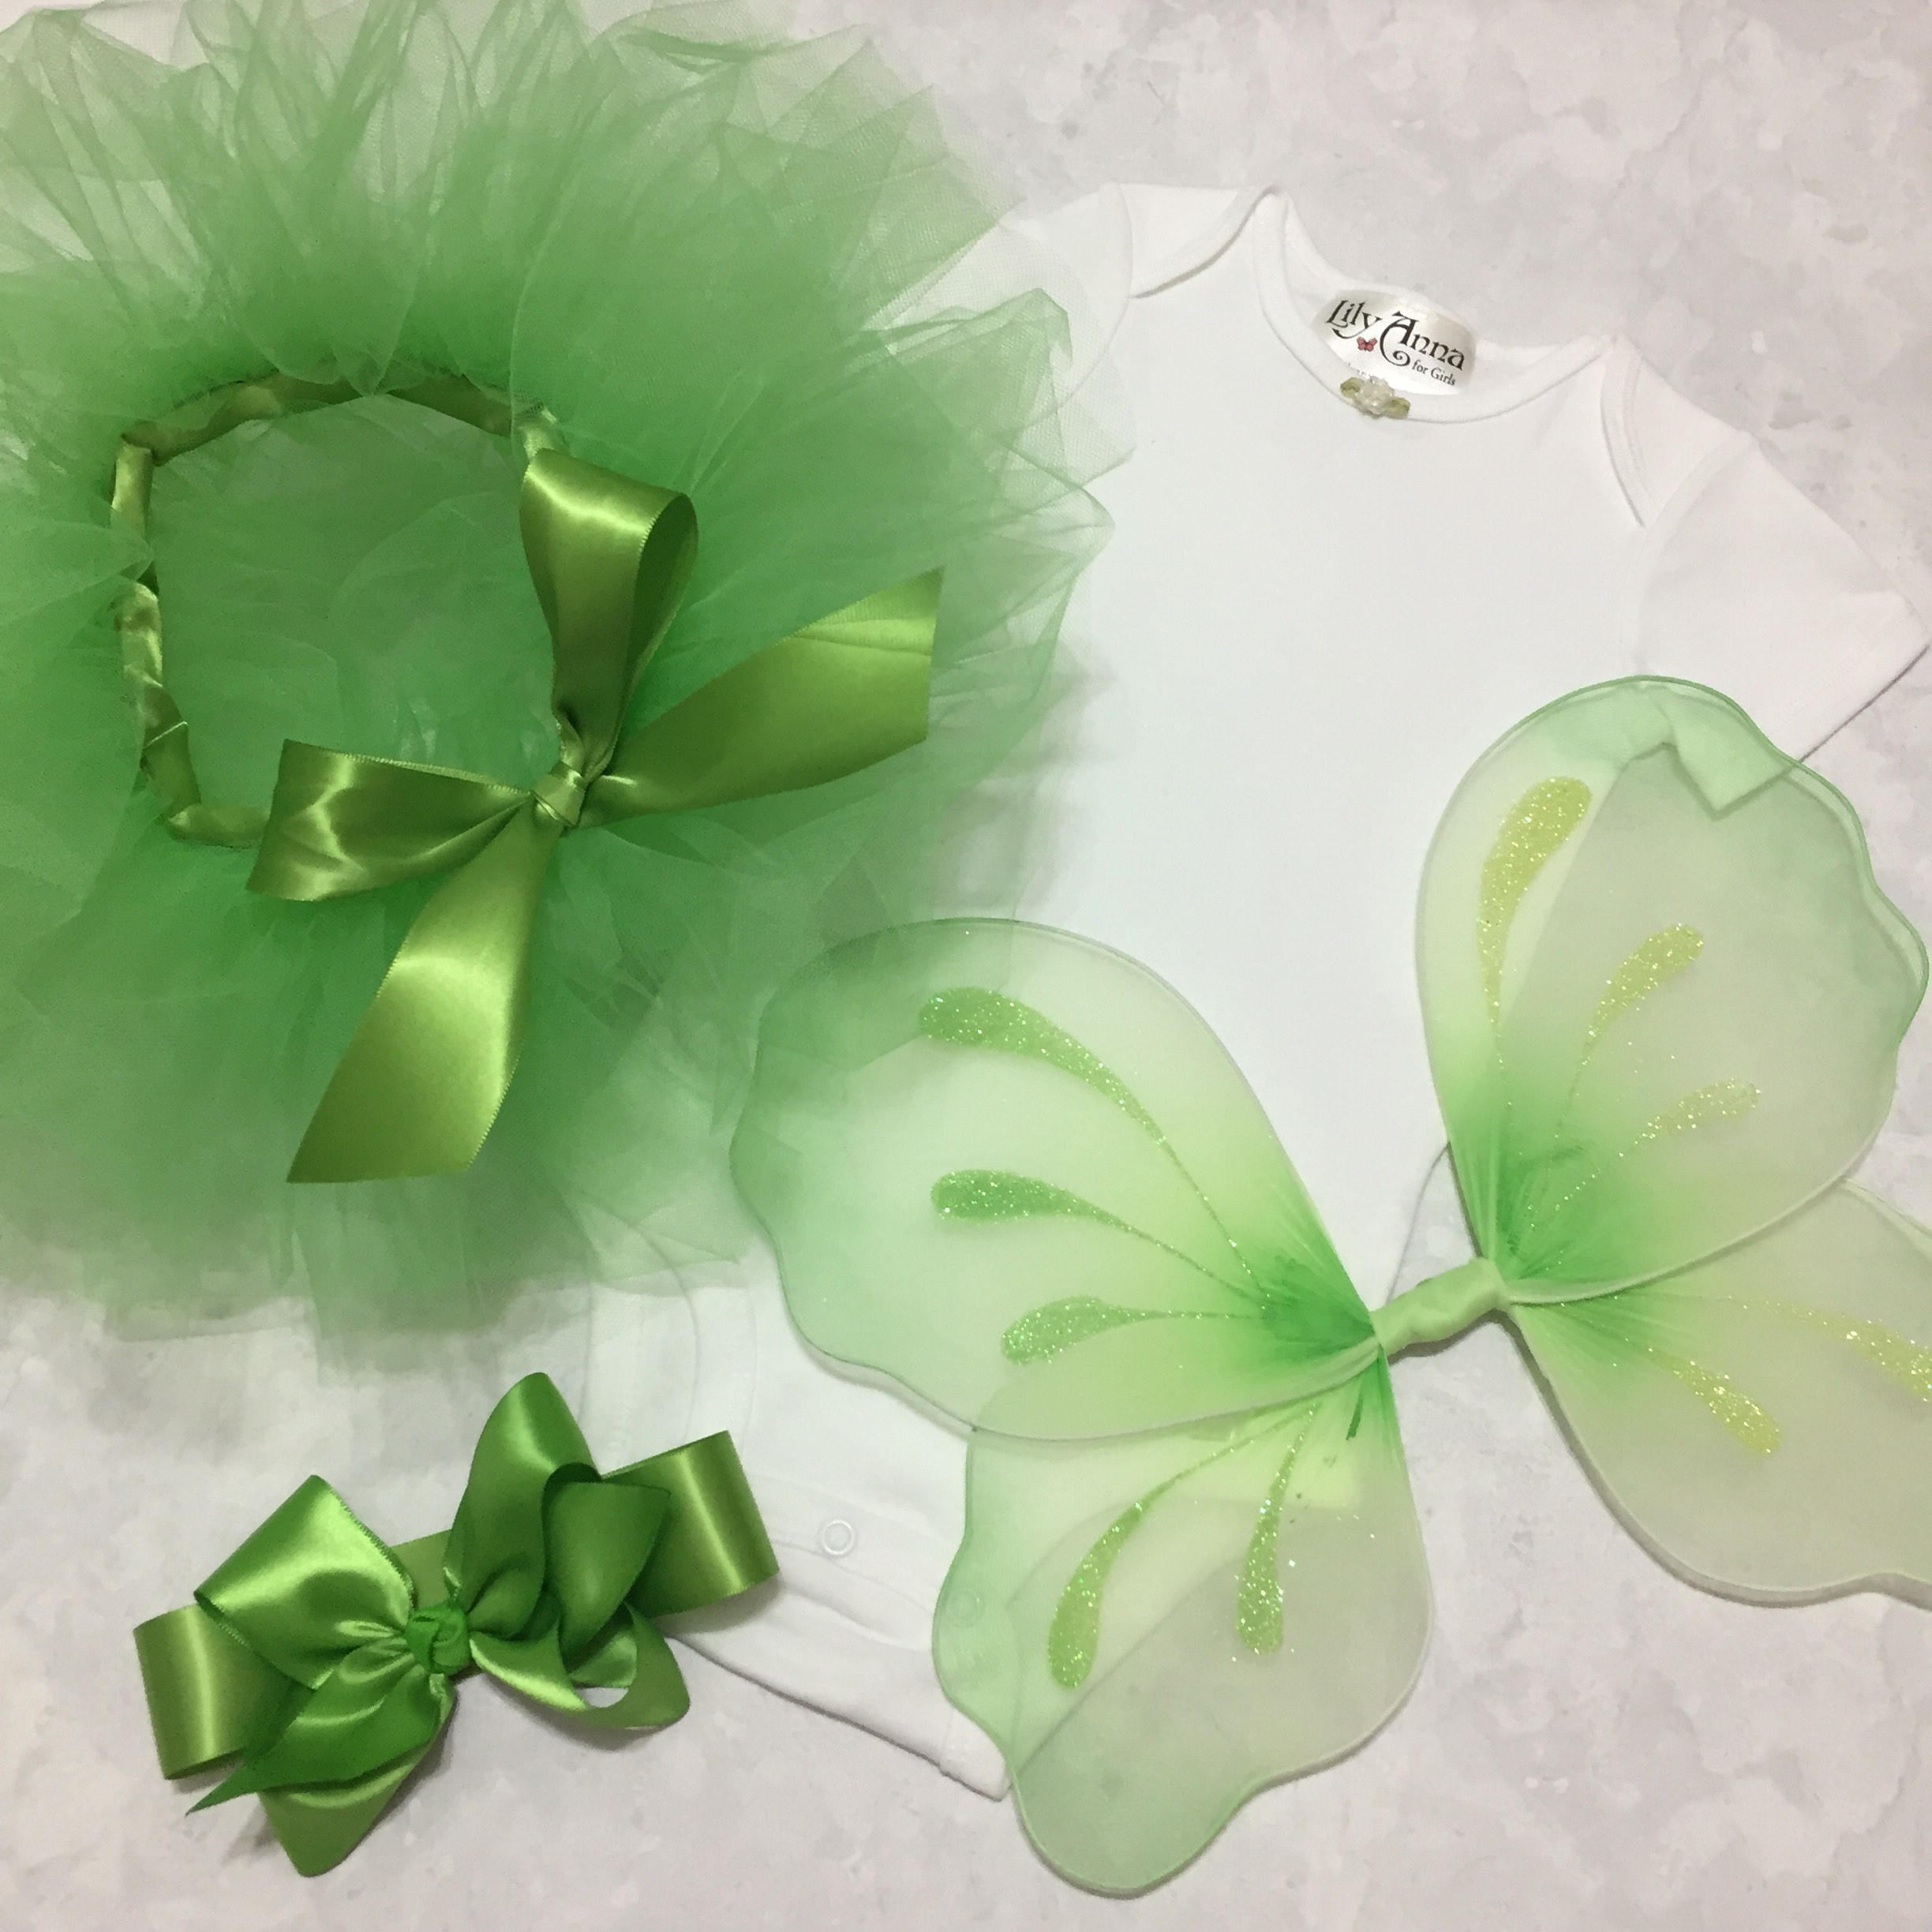 Tinkerbell Costume Green Tutu Set Infant Fairy Wings Baby Girl Onesie Toddler Halloween Costume Pixie Wings Bow Headband Tinkerbell Outfit